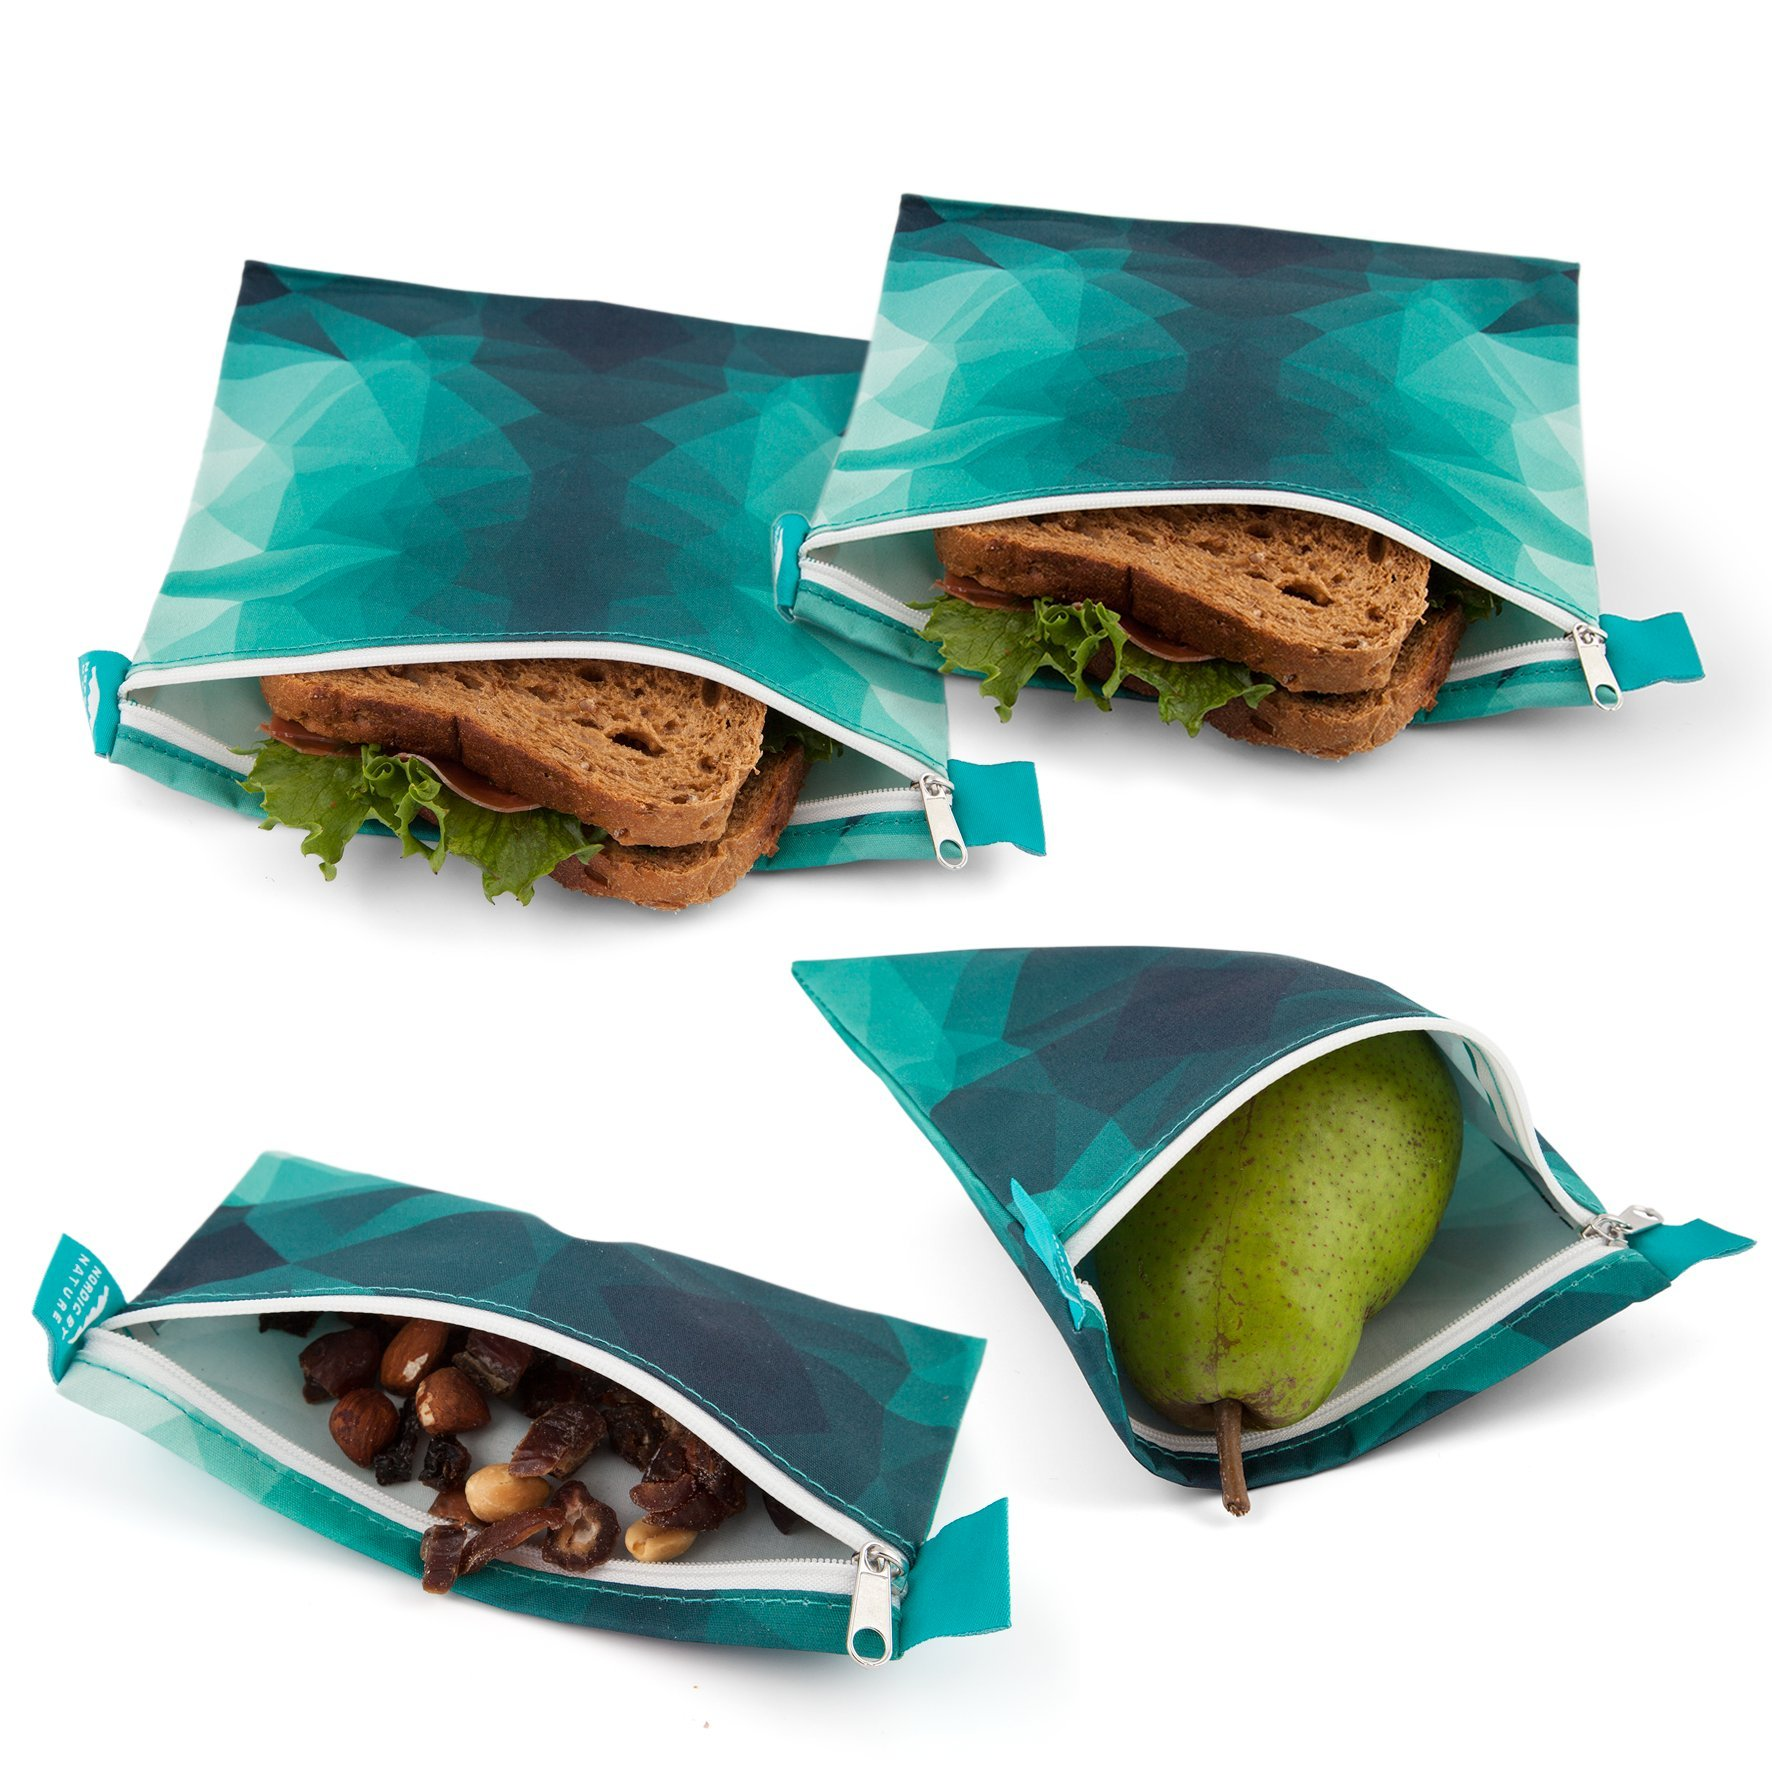 Nordic By Nature Premium Sandwich & Snack Bags | Designer Set of 4 Pack | Resealable, Reusable and Dishwasher Safe Lunch Baggies | Easy Open Zipper | Great Lunch Prep Bags | Turquoise